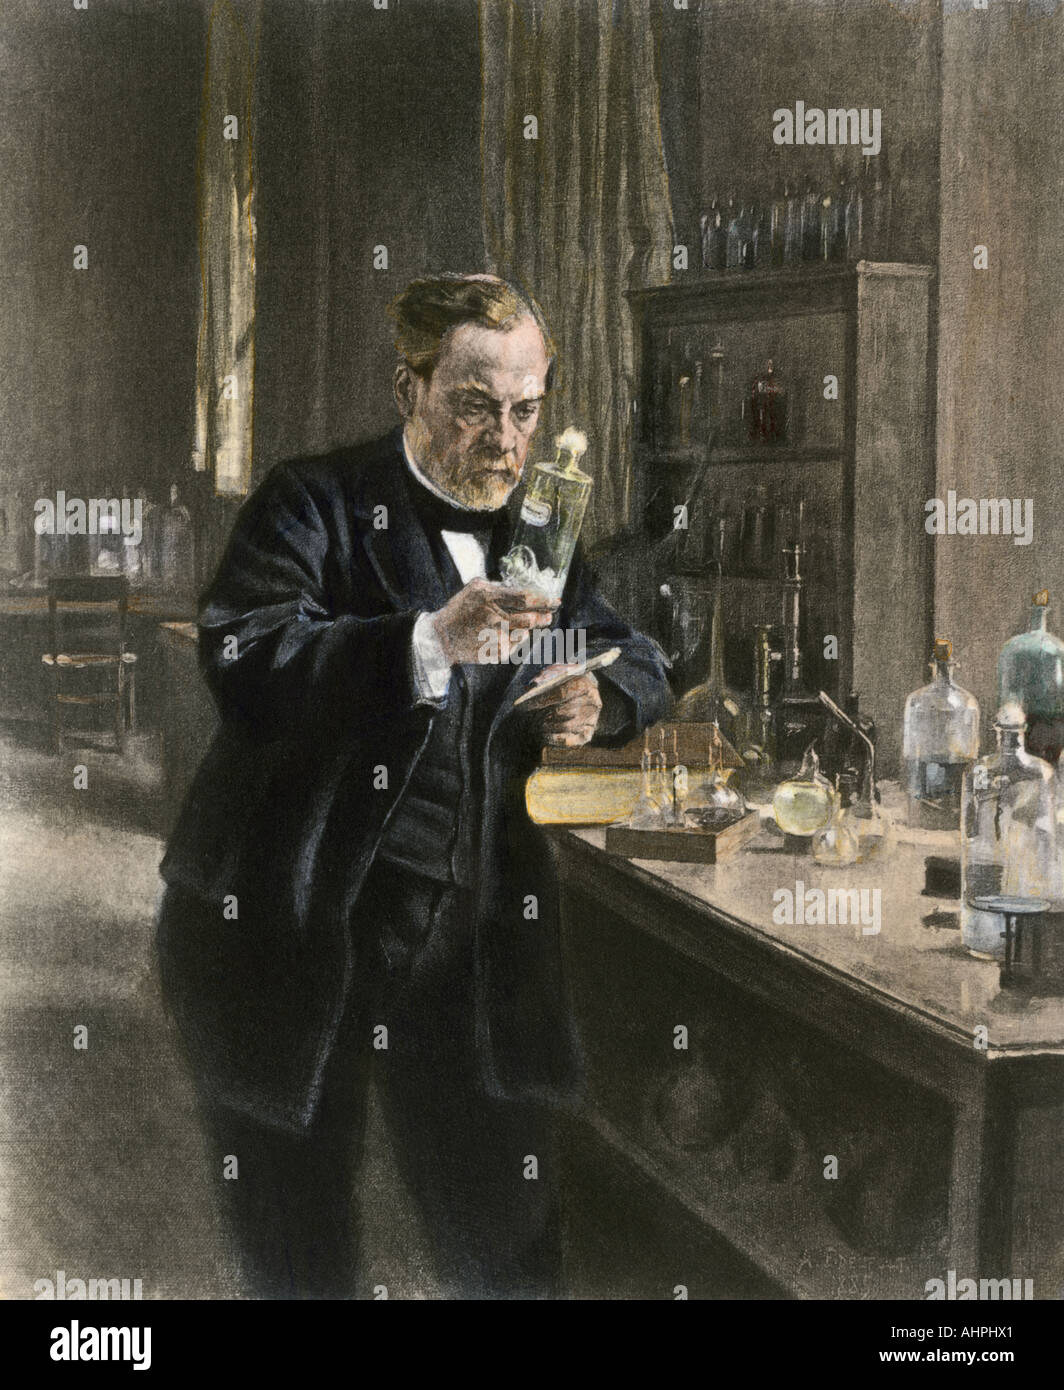 Louis Pasteur in his laboratory. Hand-colored photogravure of an illustration by Albert Edelfelt Stock Photo